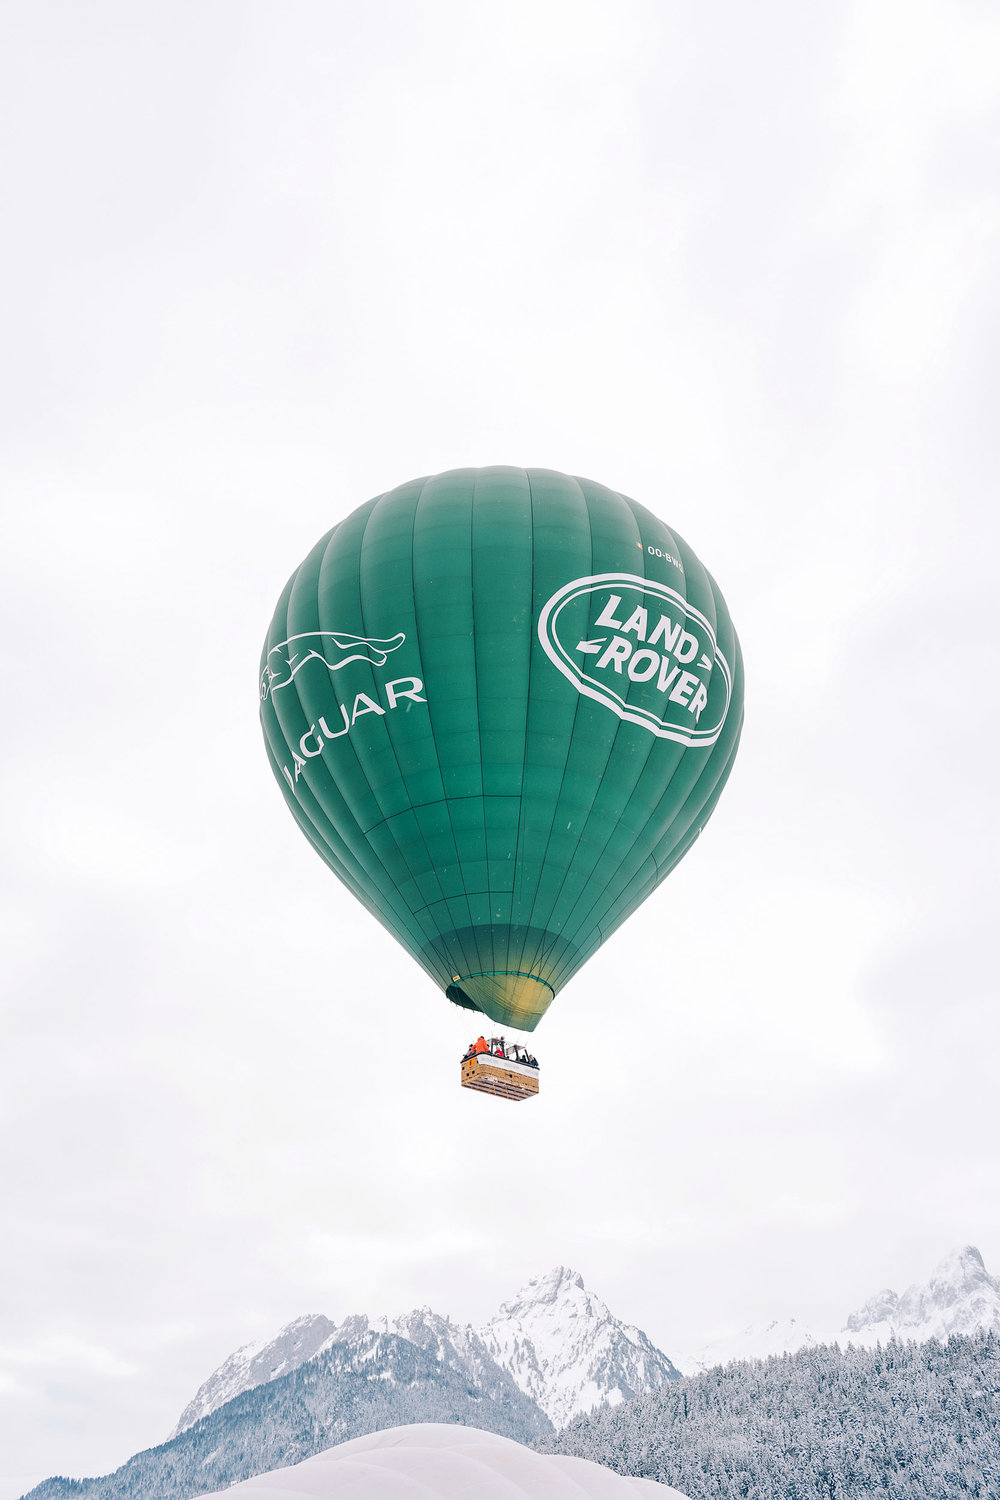 A Land Rover balloon at the International Hot Air Balloon Festival